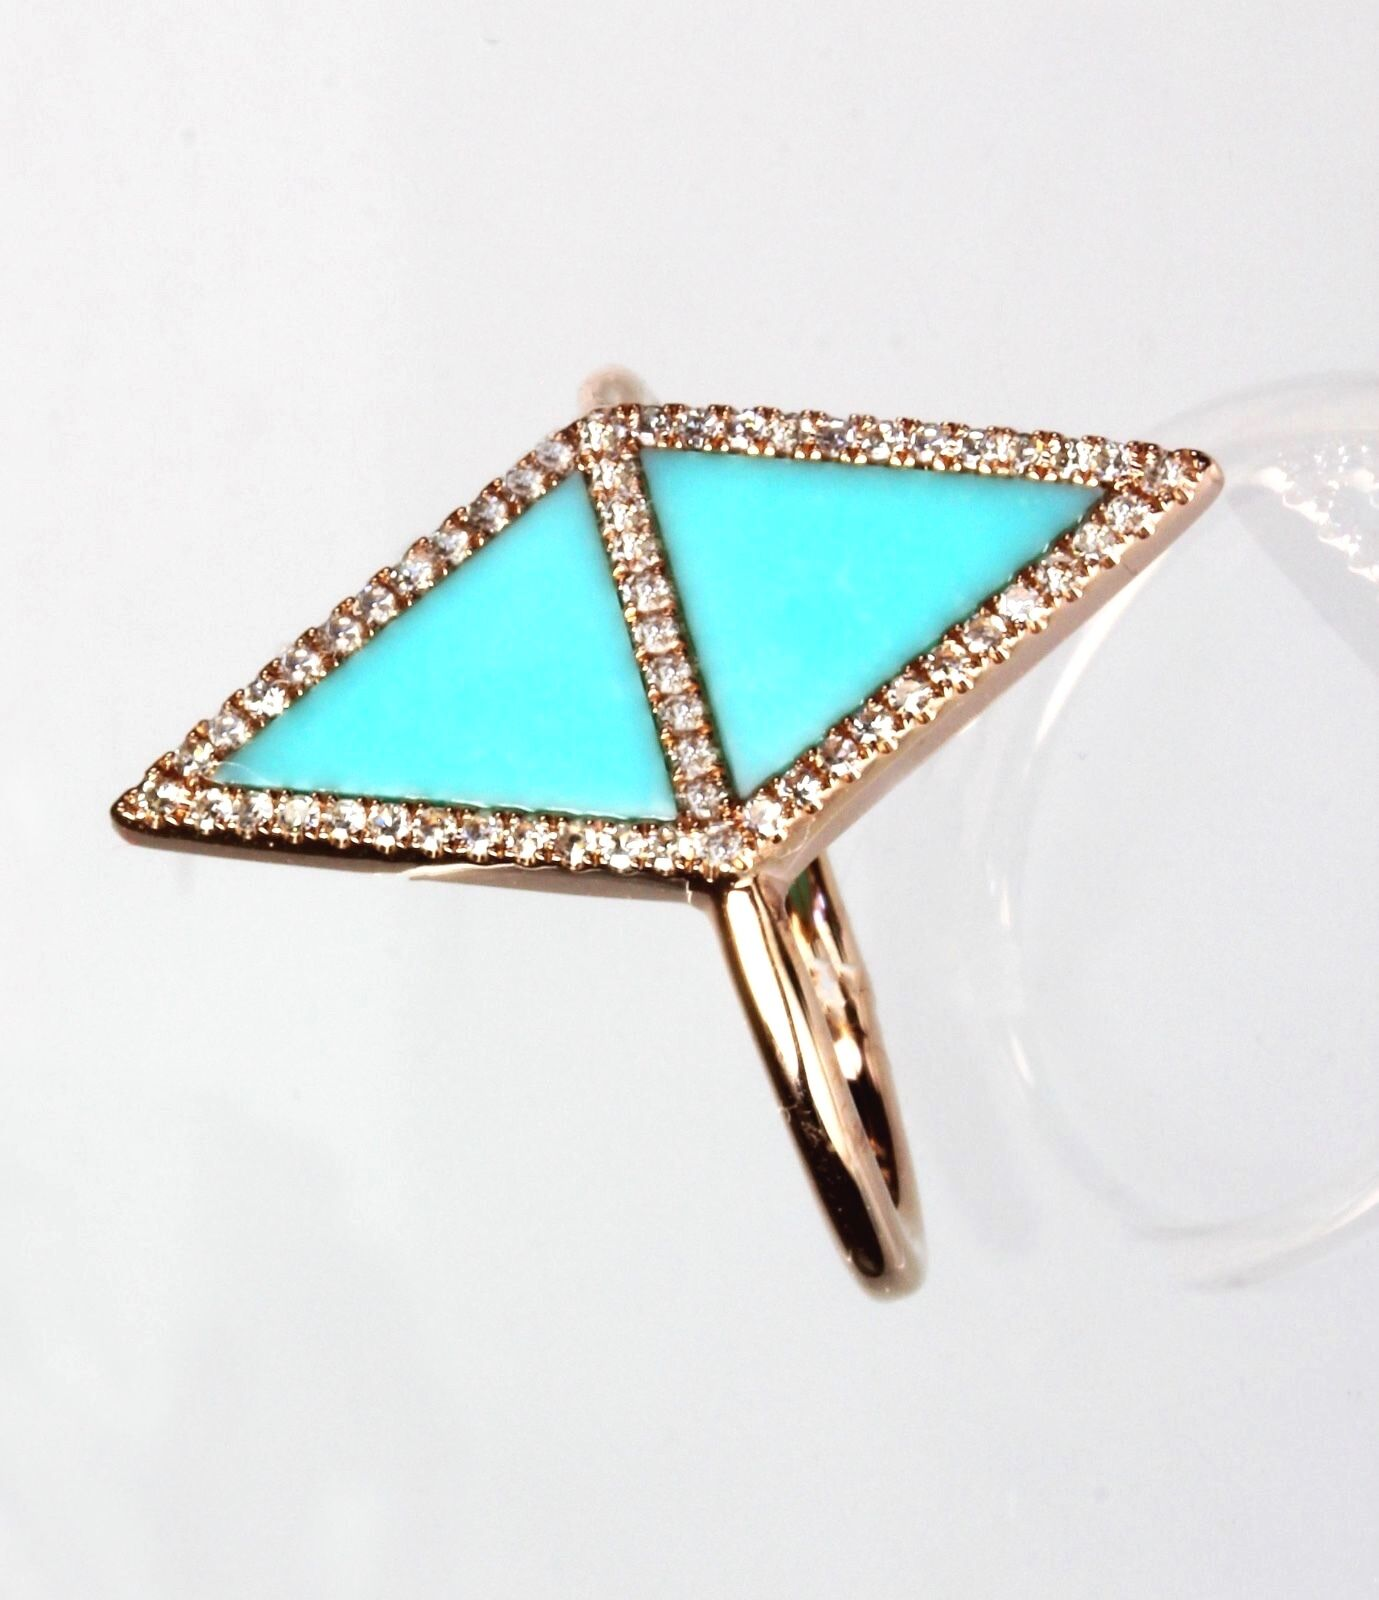 14k Yellow or pink gold Turquoise & Diamond Ring  ( Dia 0.19cts, TQ 0.88cts)